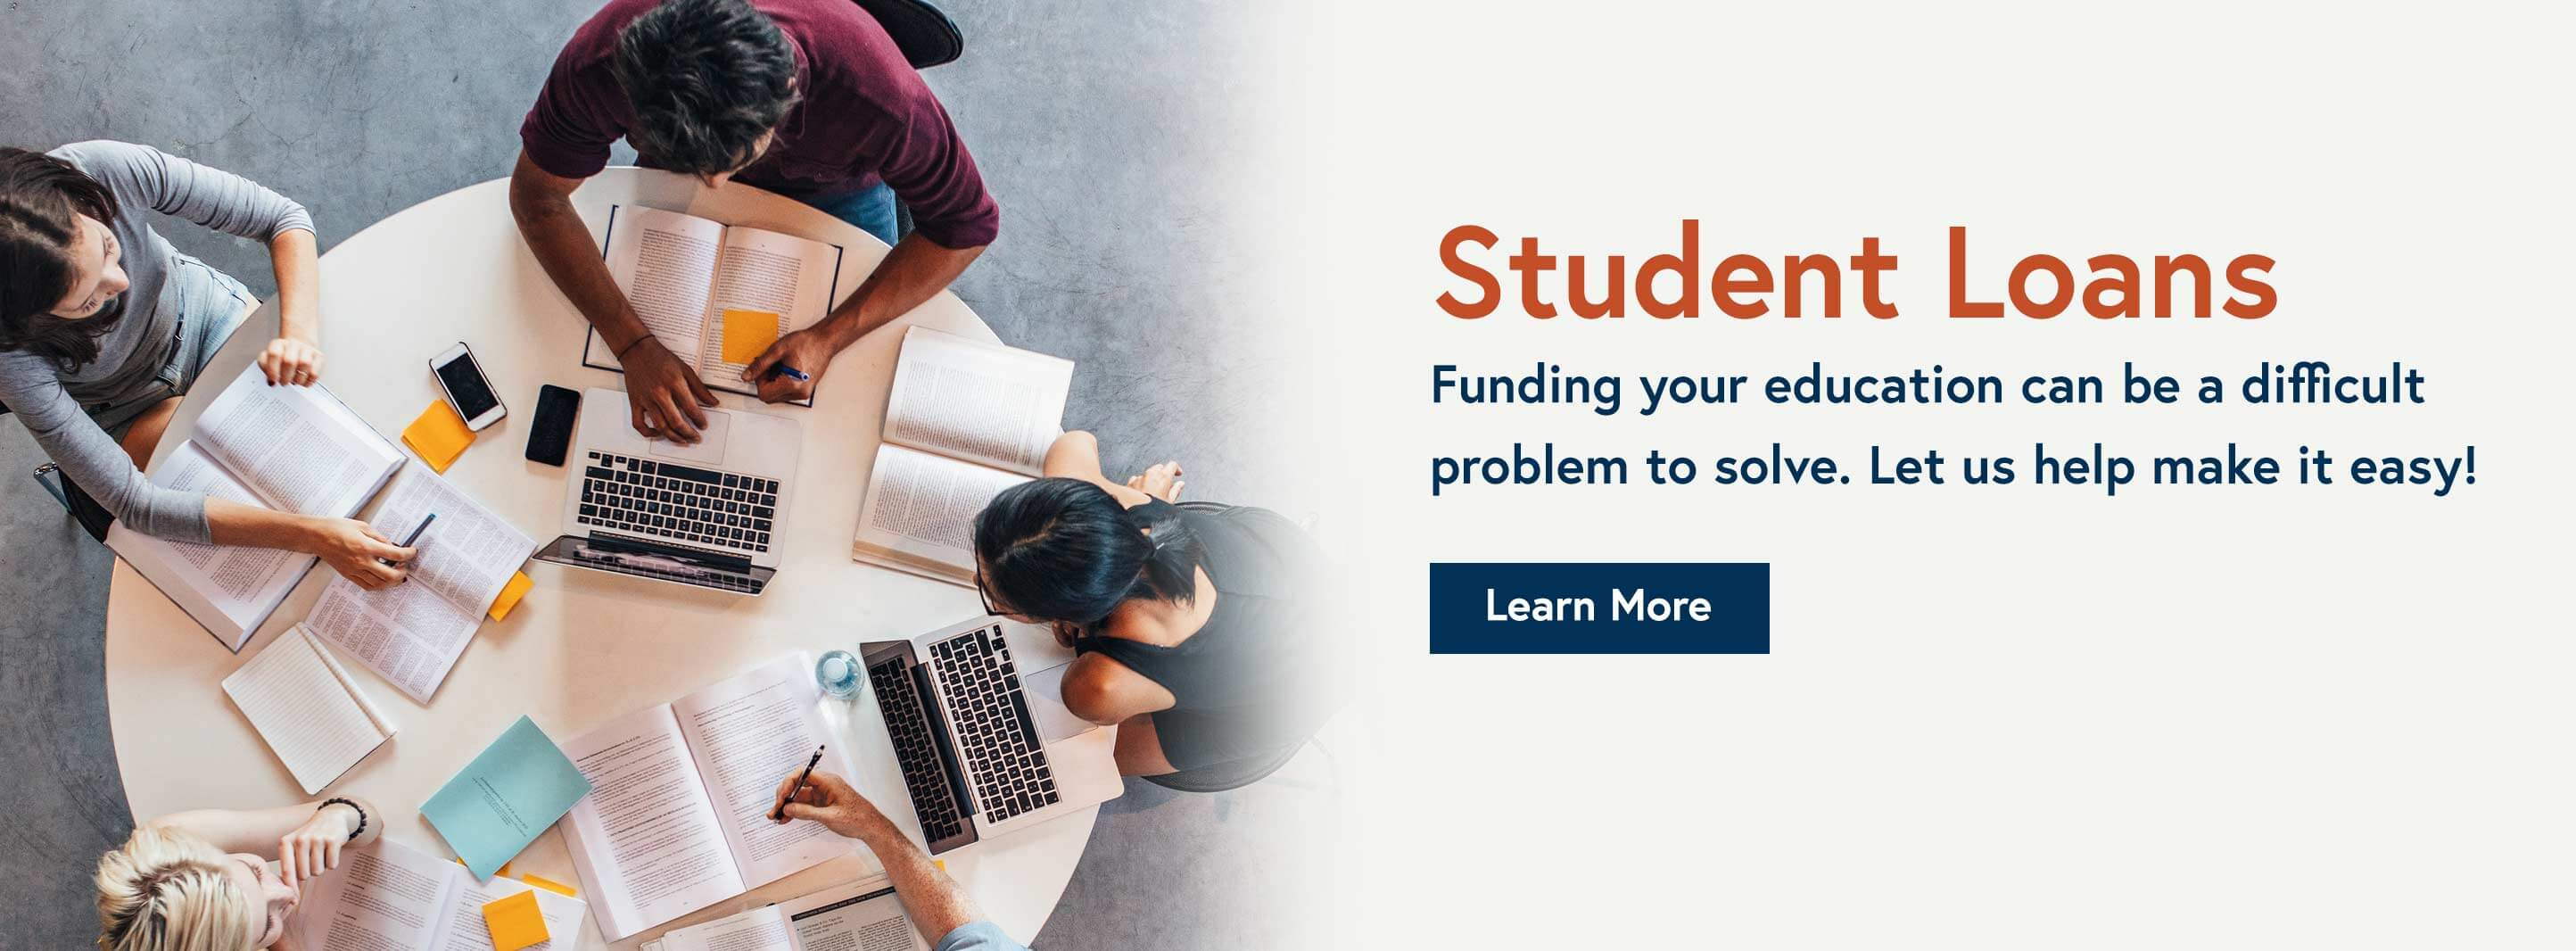 Funding Your Education can be a difficult problem to solve. Let us help make it easy! - Learn More